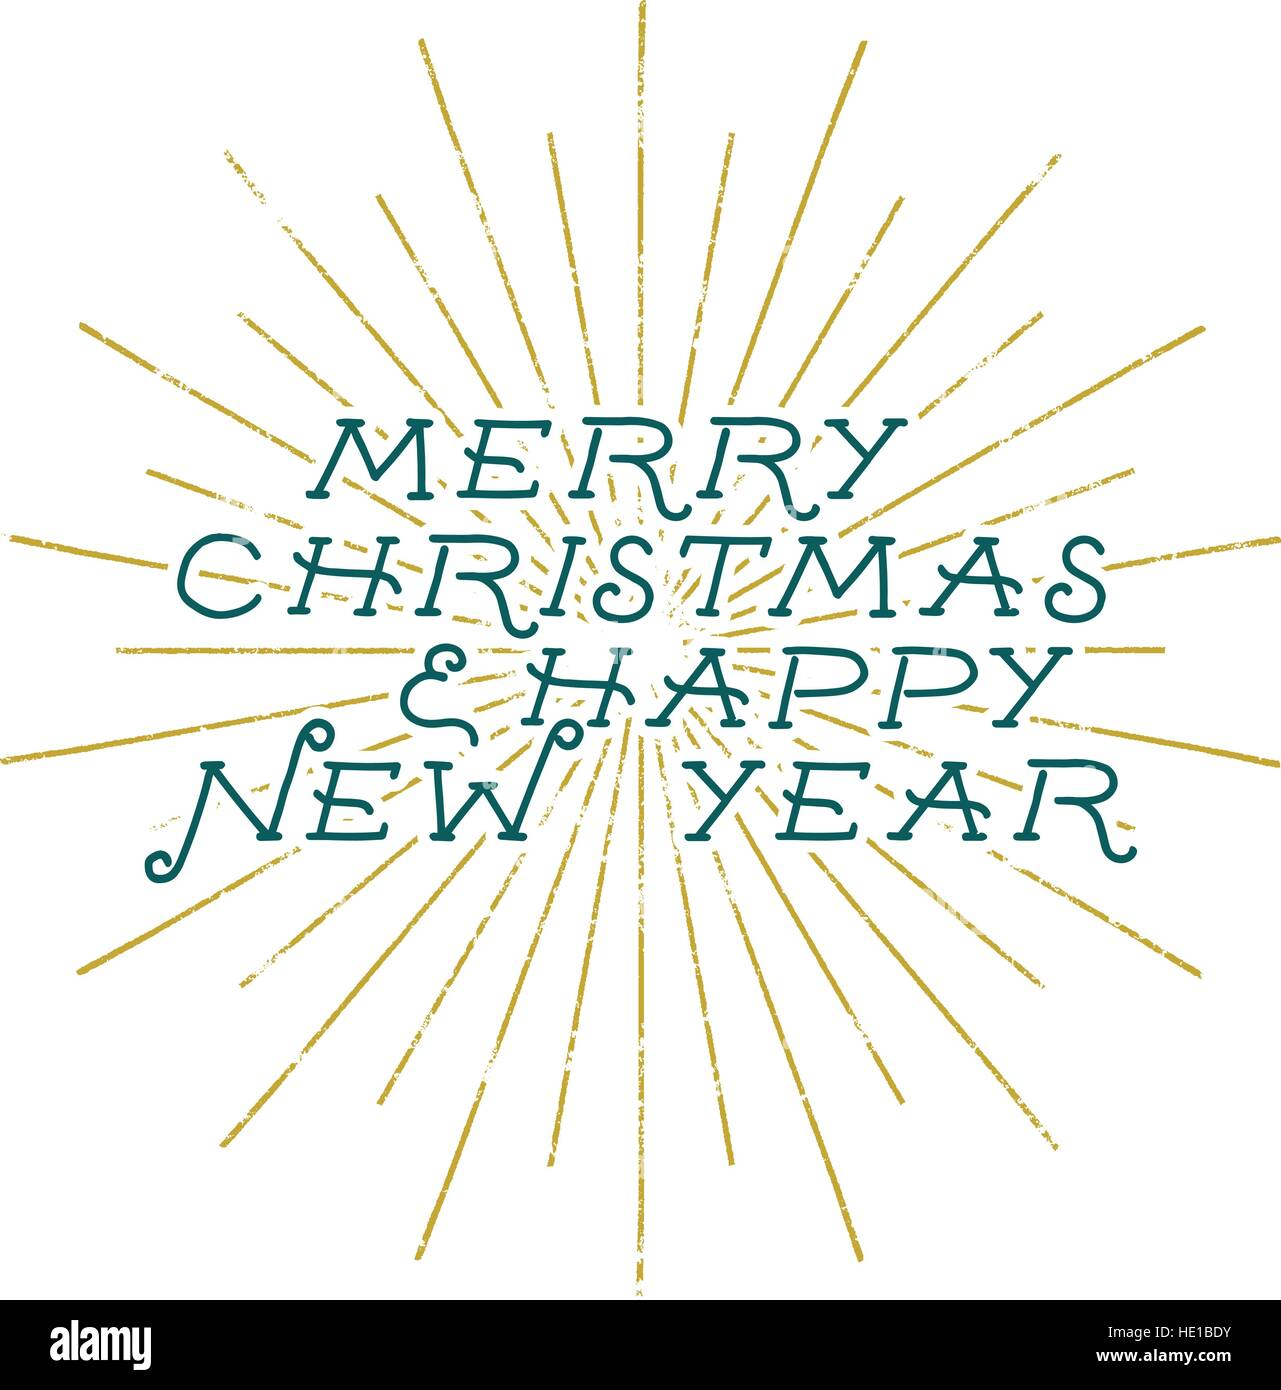 merry christmas and happy new year lettering holiday wish saying and vintage label seasons greetings calligraphy seasonal typography design holi